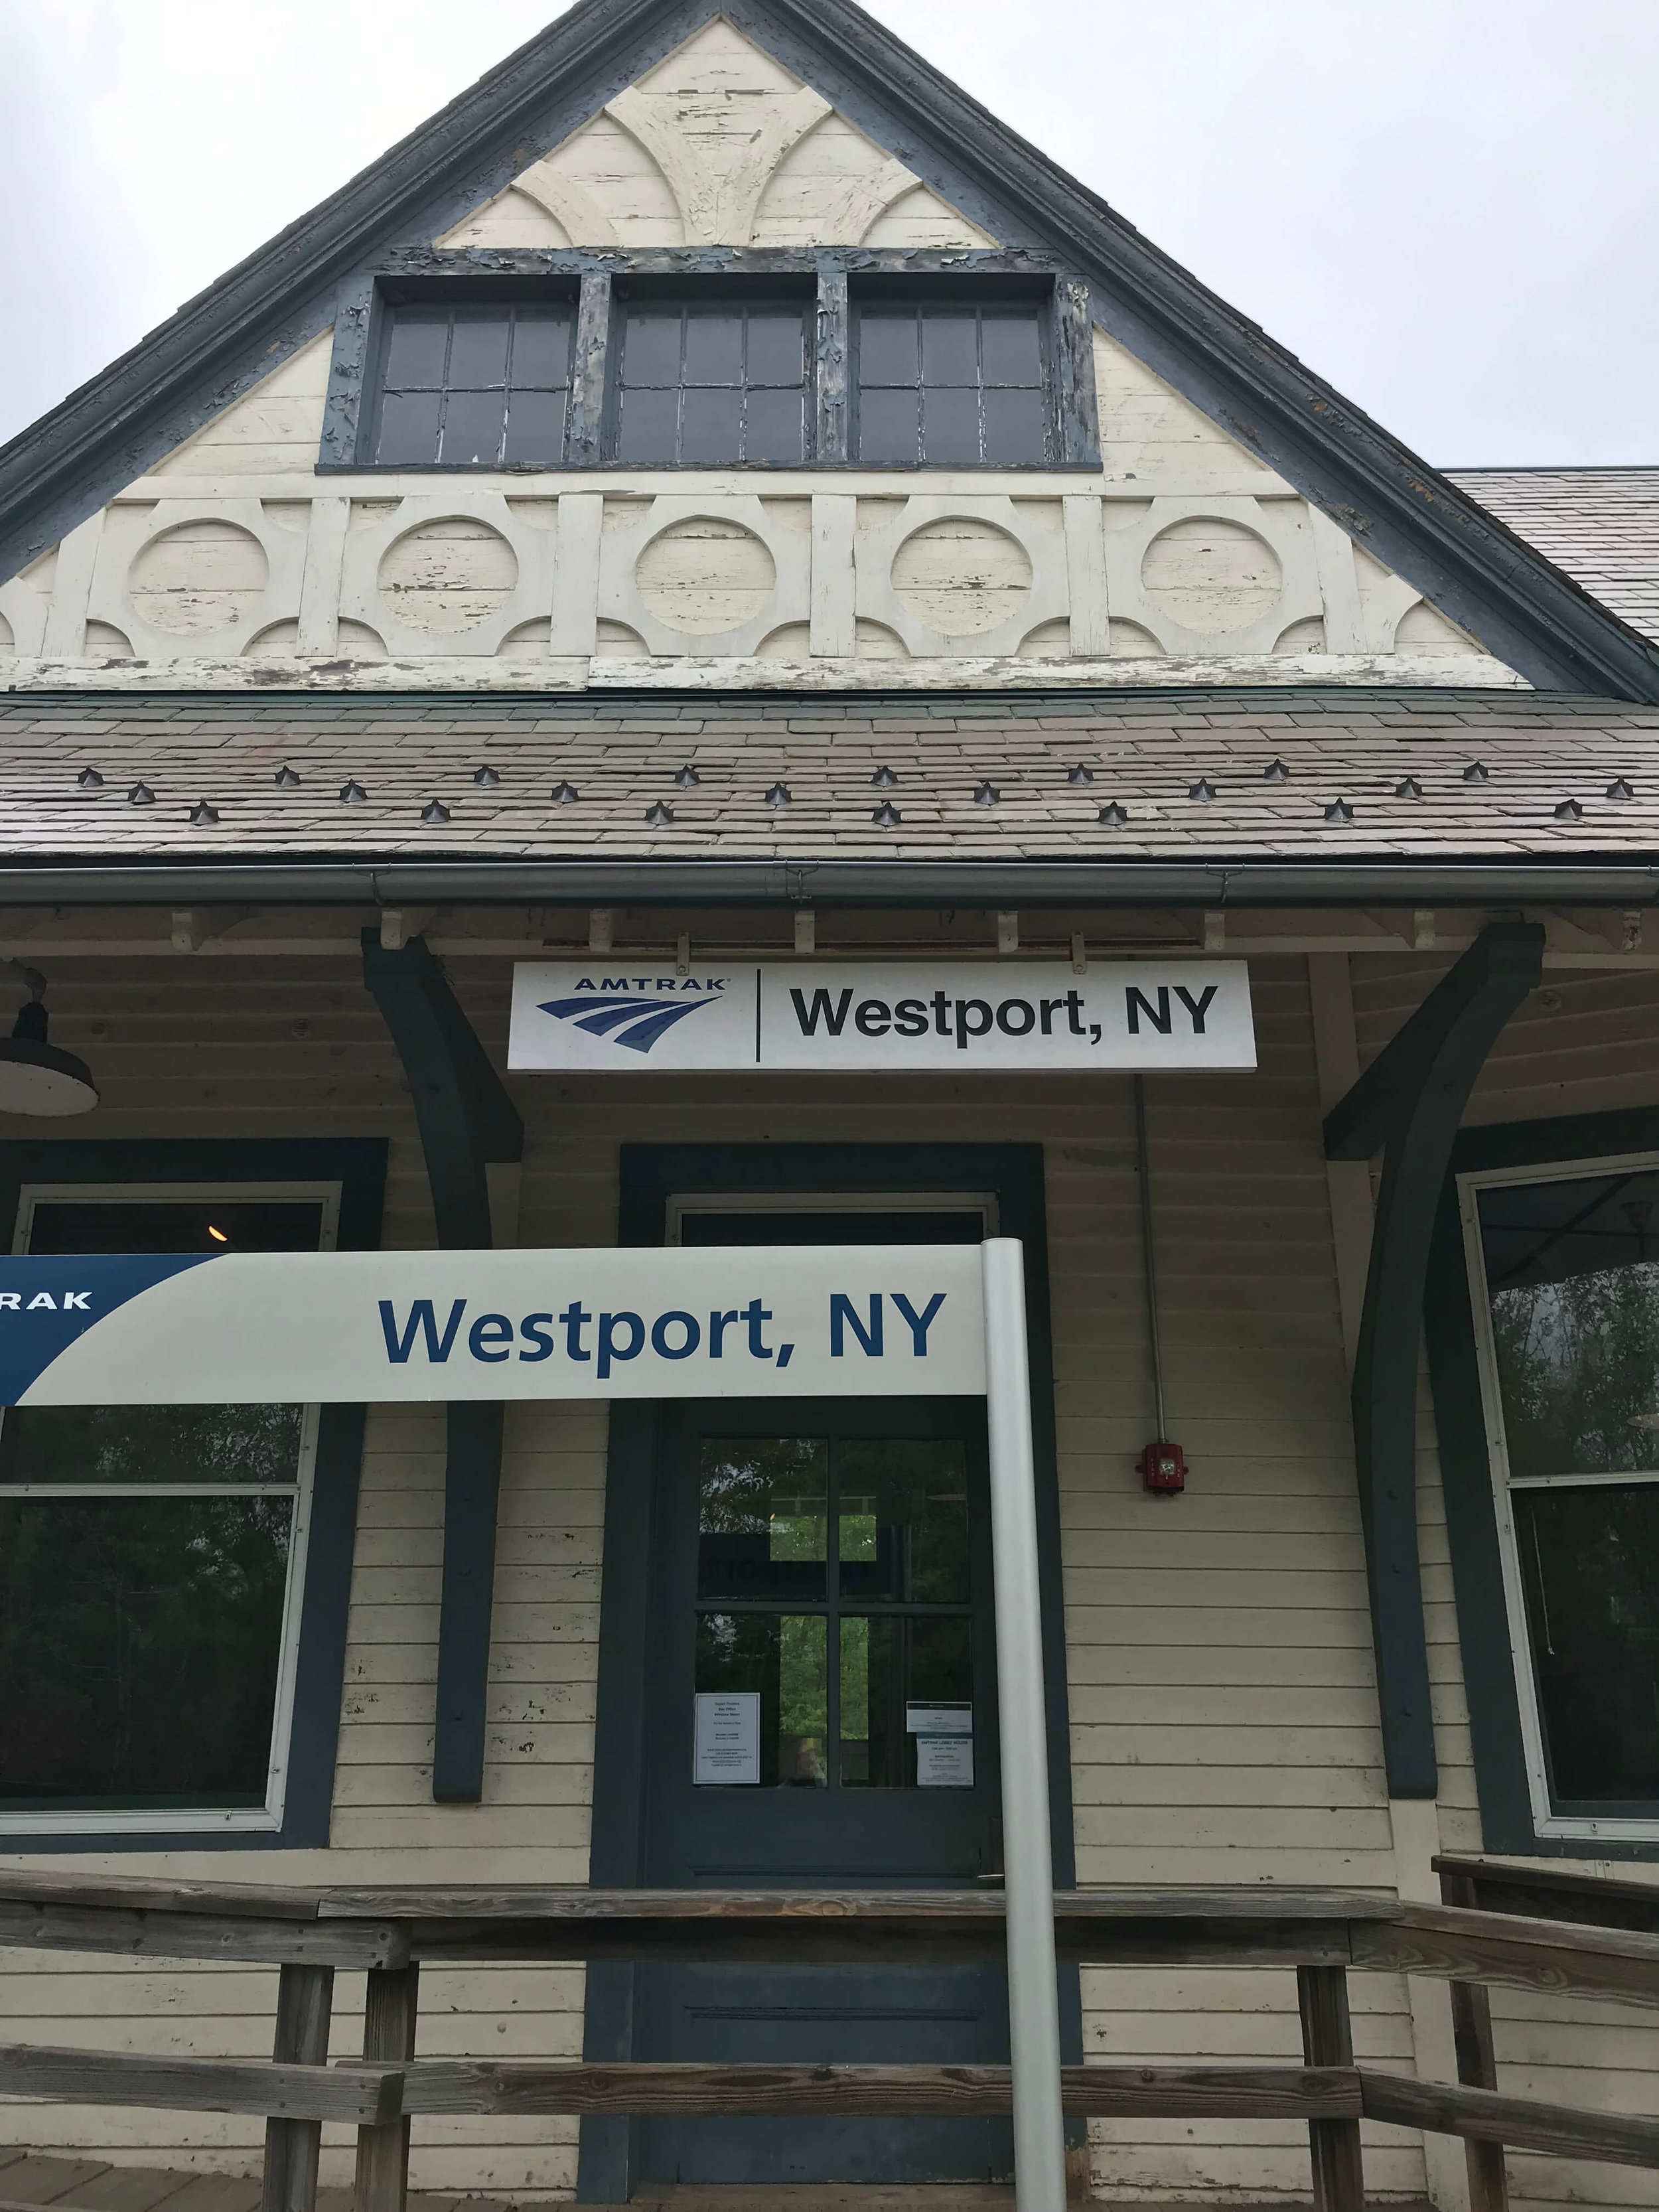 Essex County: The Depot Theatre, Inc. - Westport Train Depot (Depot Theatre) Building Condition Report